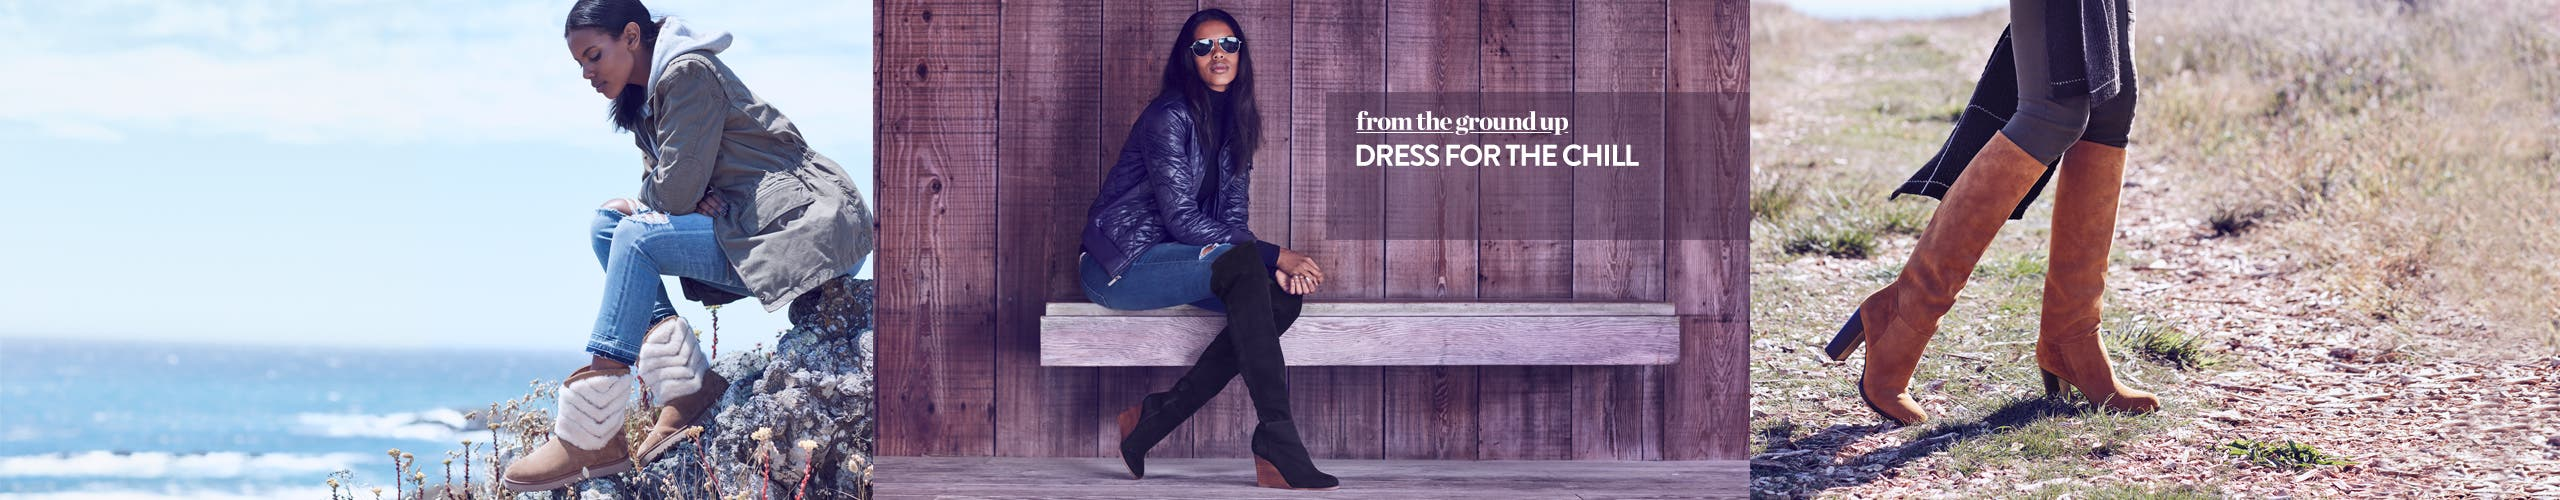 From the ground up: dress for the chill in the latest women's fall boots.